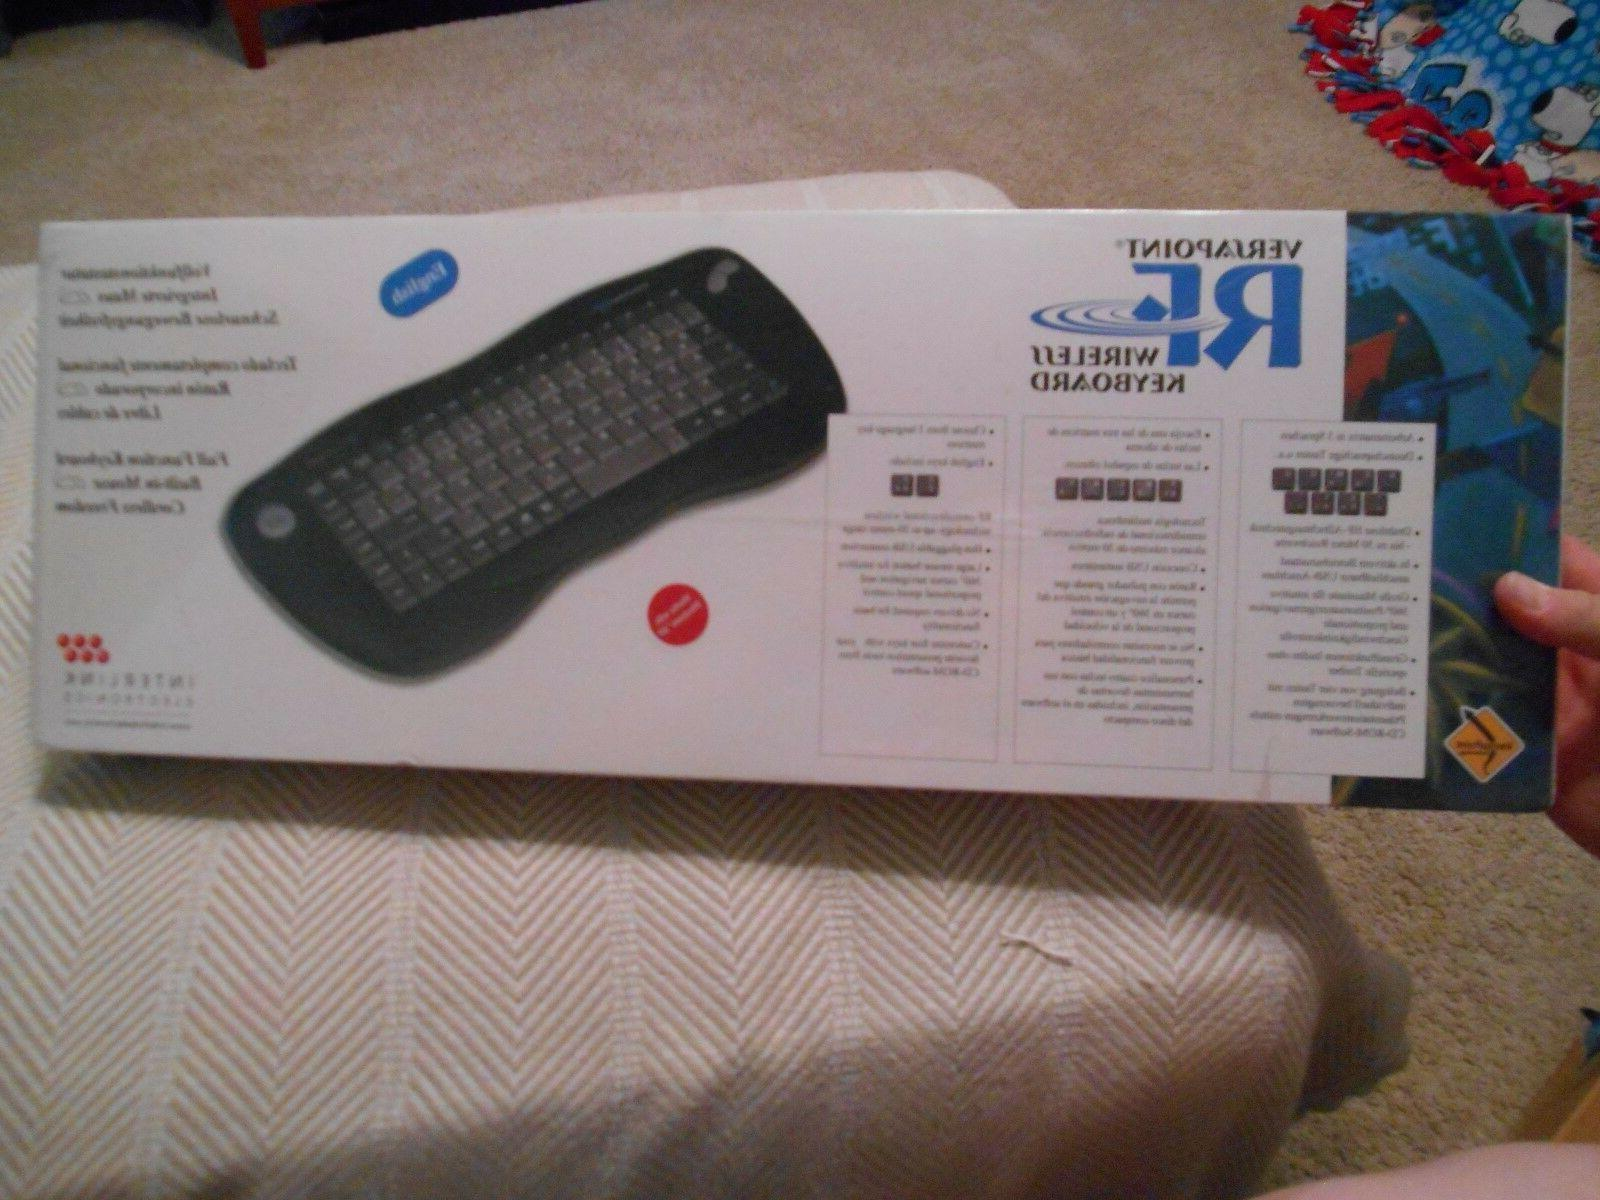 VersaPoint RF Wireless Keyboard, NEW in box, Interlink Elect